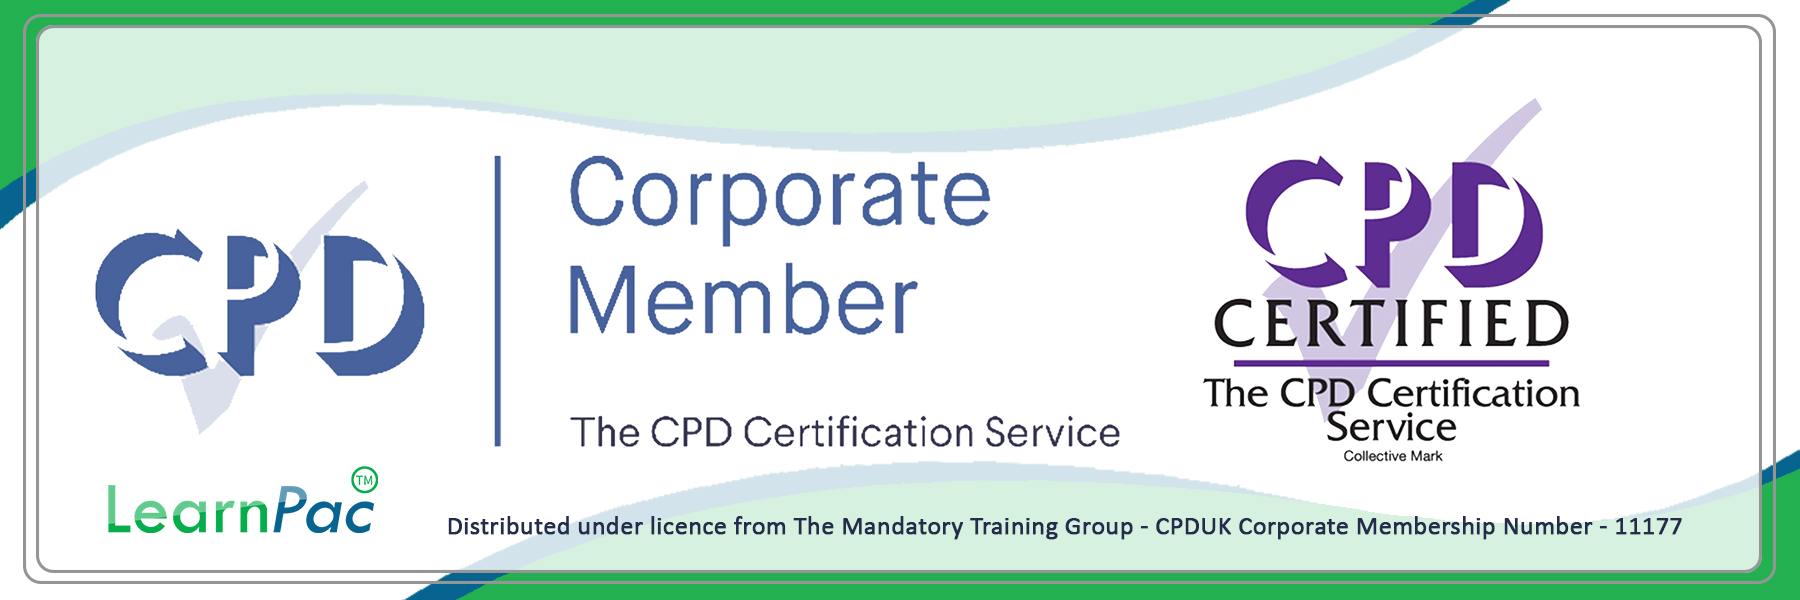 Handling Information - Train the Trainer Course + Trainer Pack - E-Learning Courses - LearnPac Systems UK -